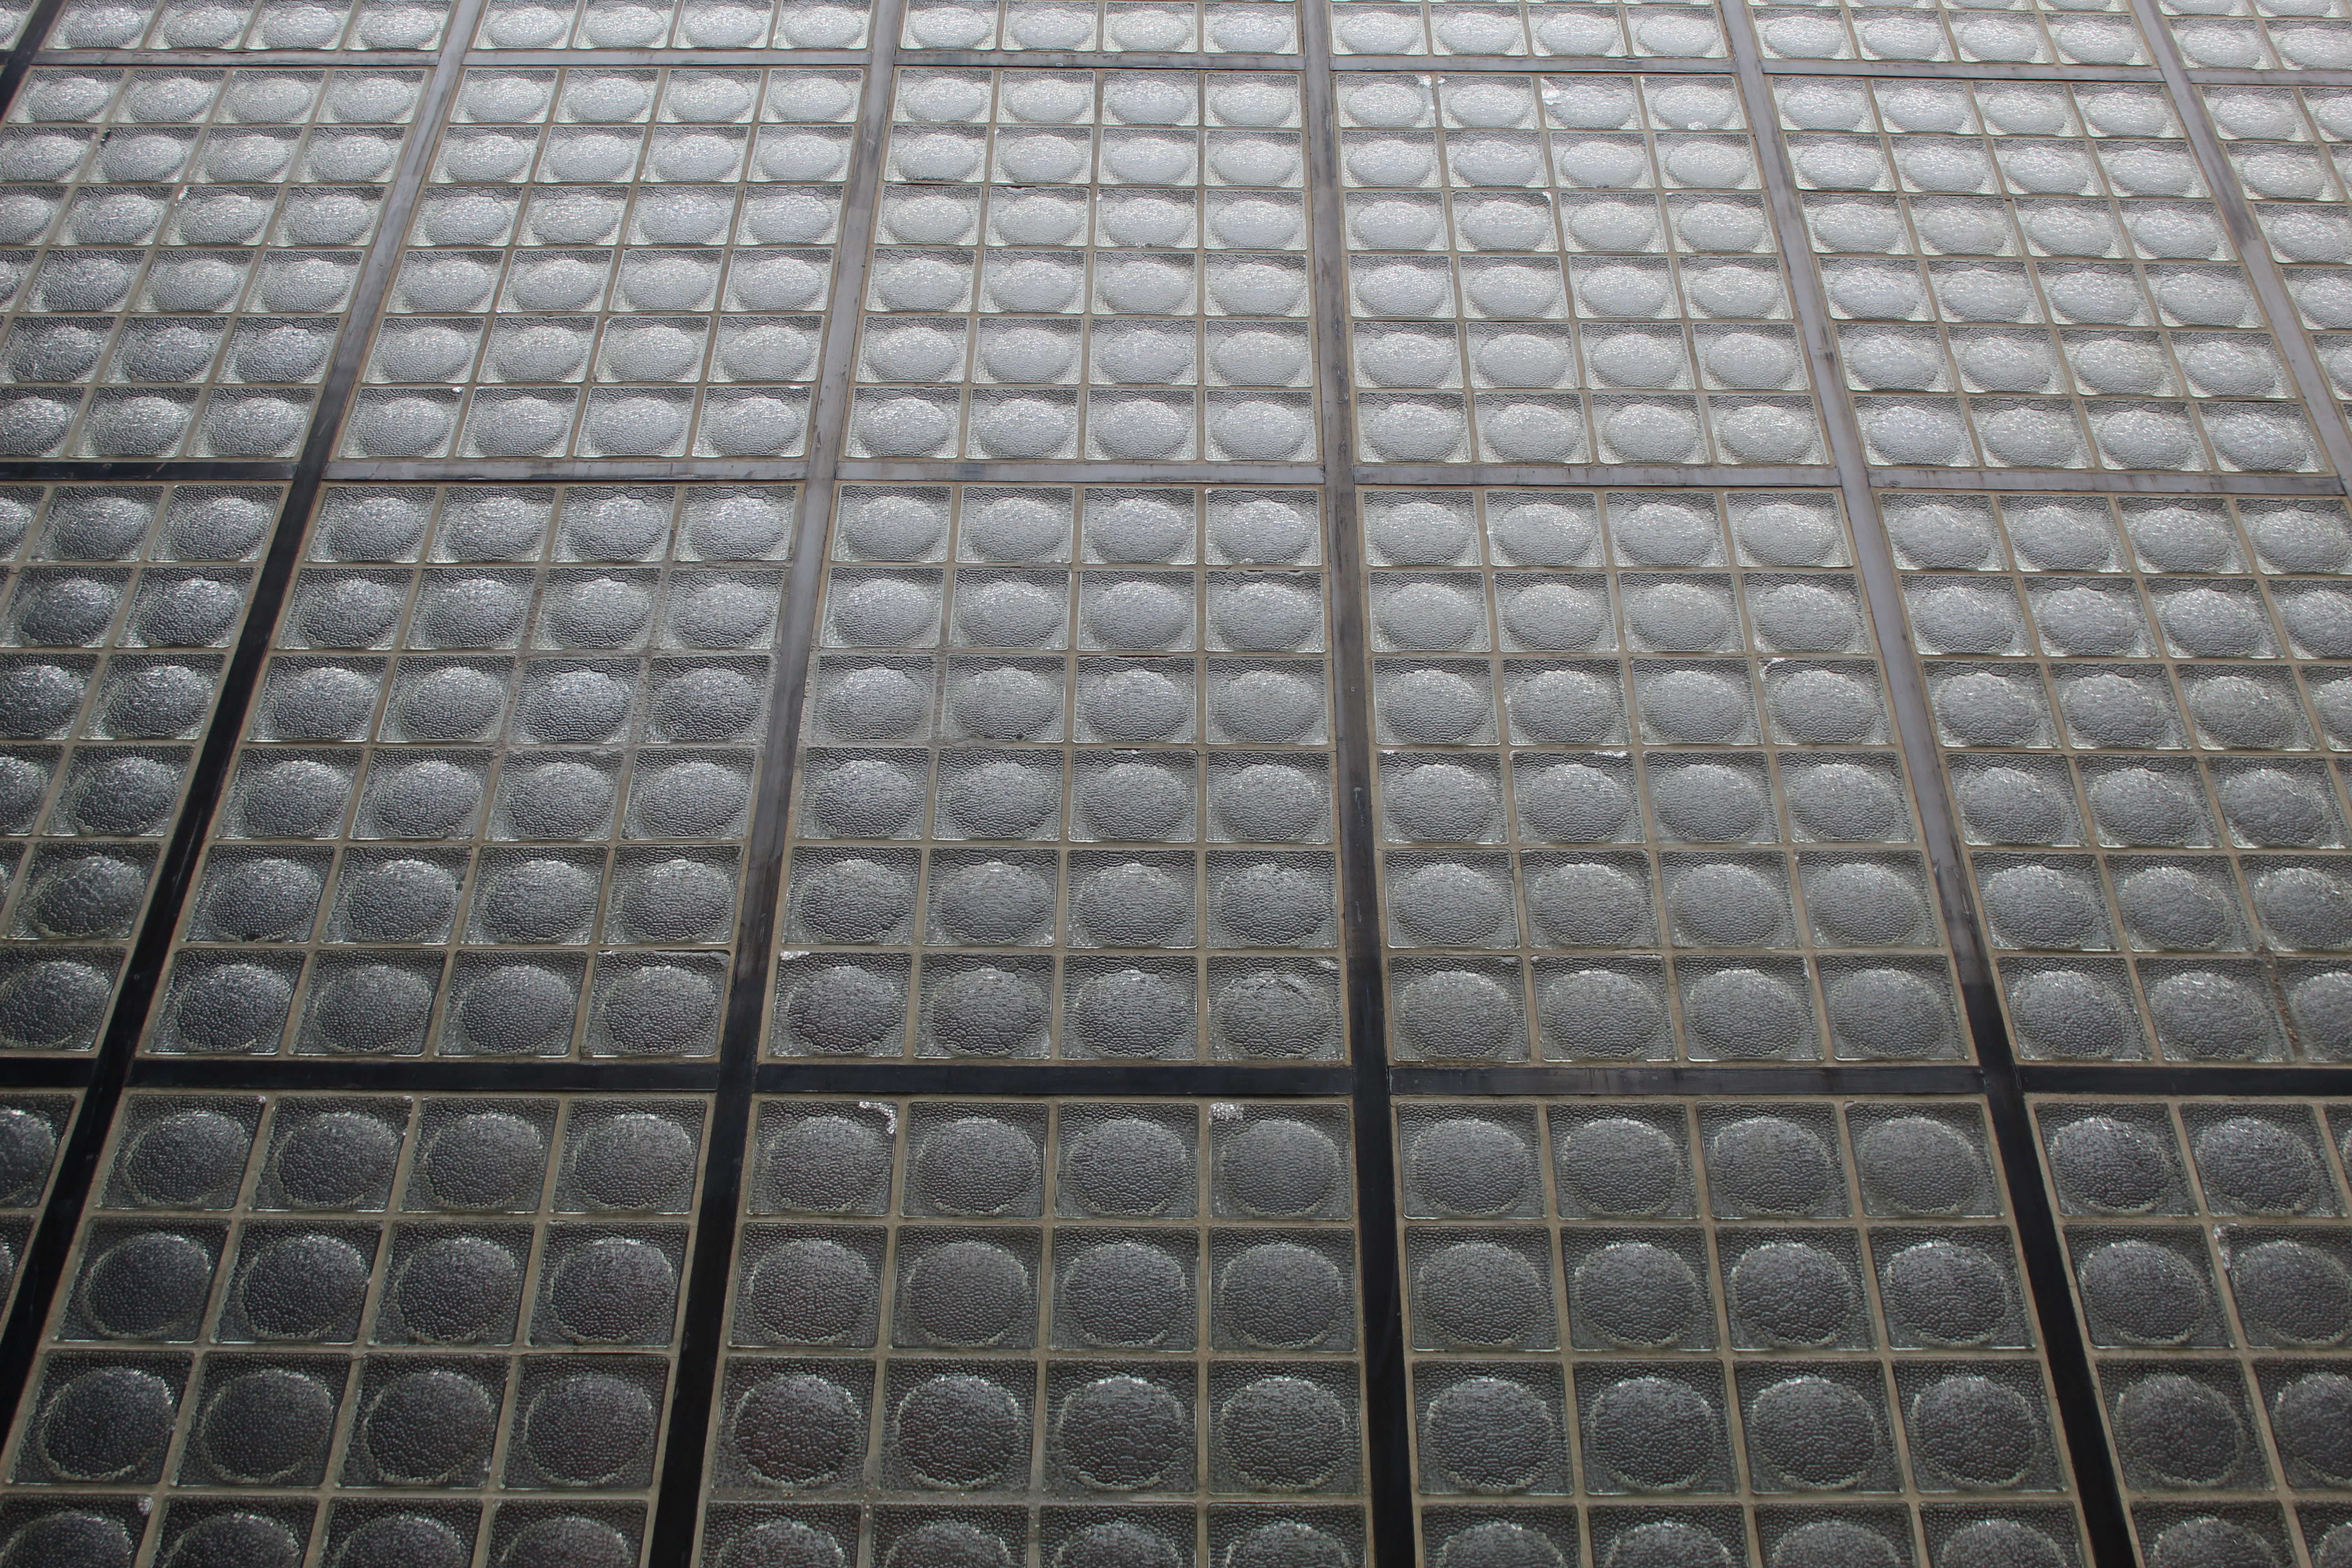 Square pieces of glass with a circular center in a steel frame.